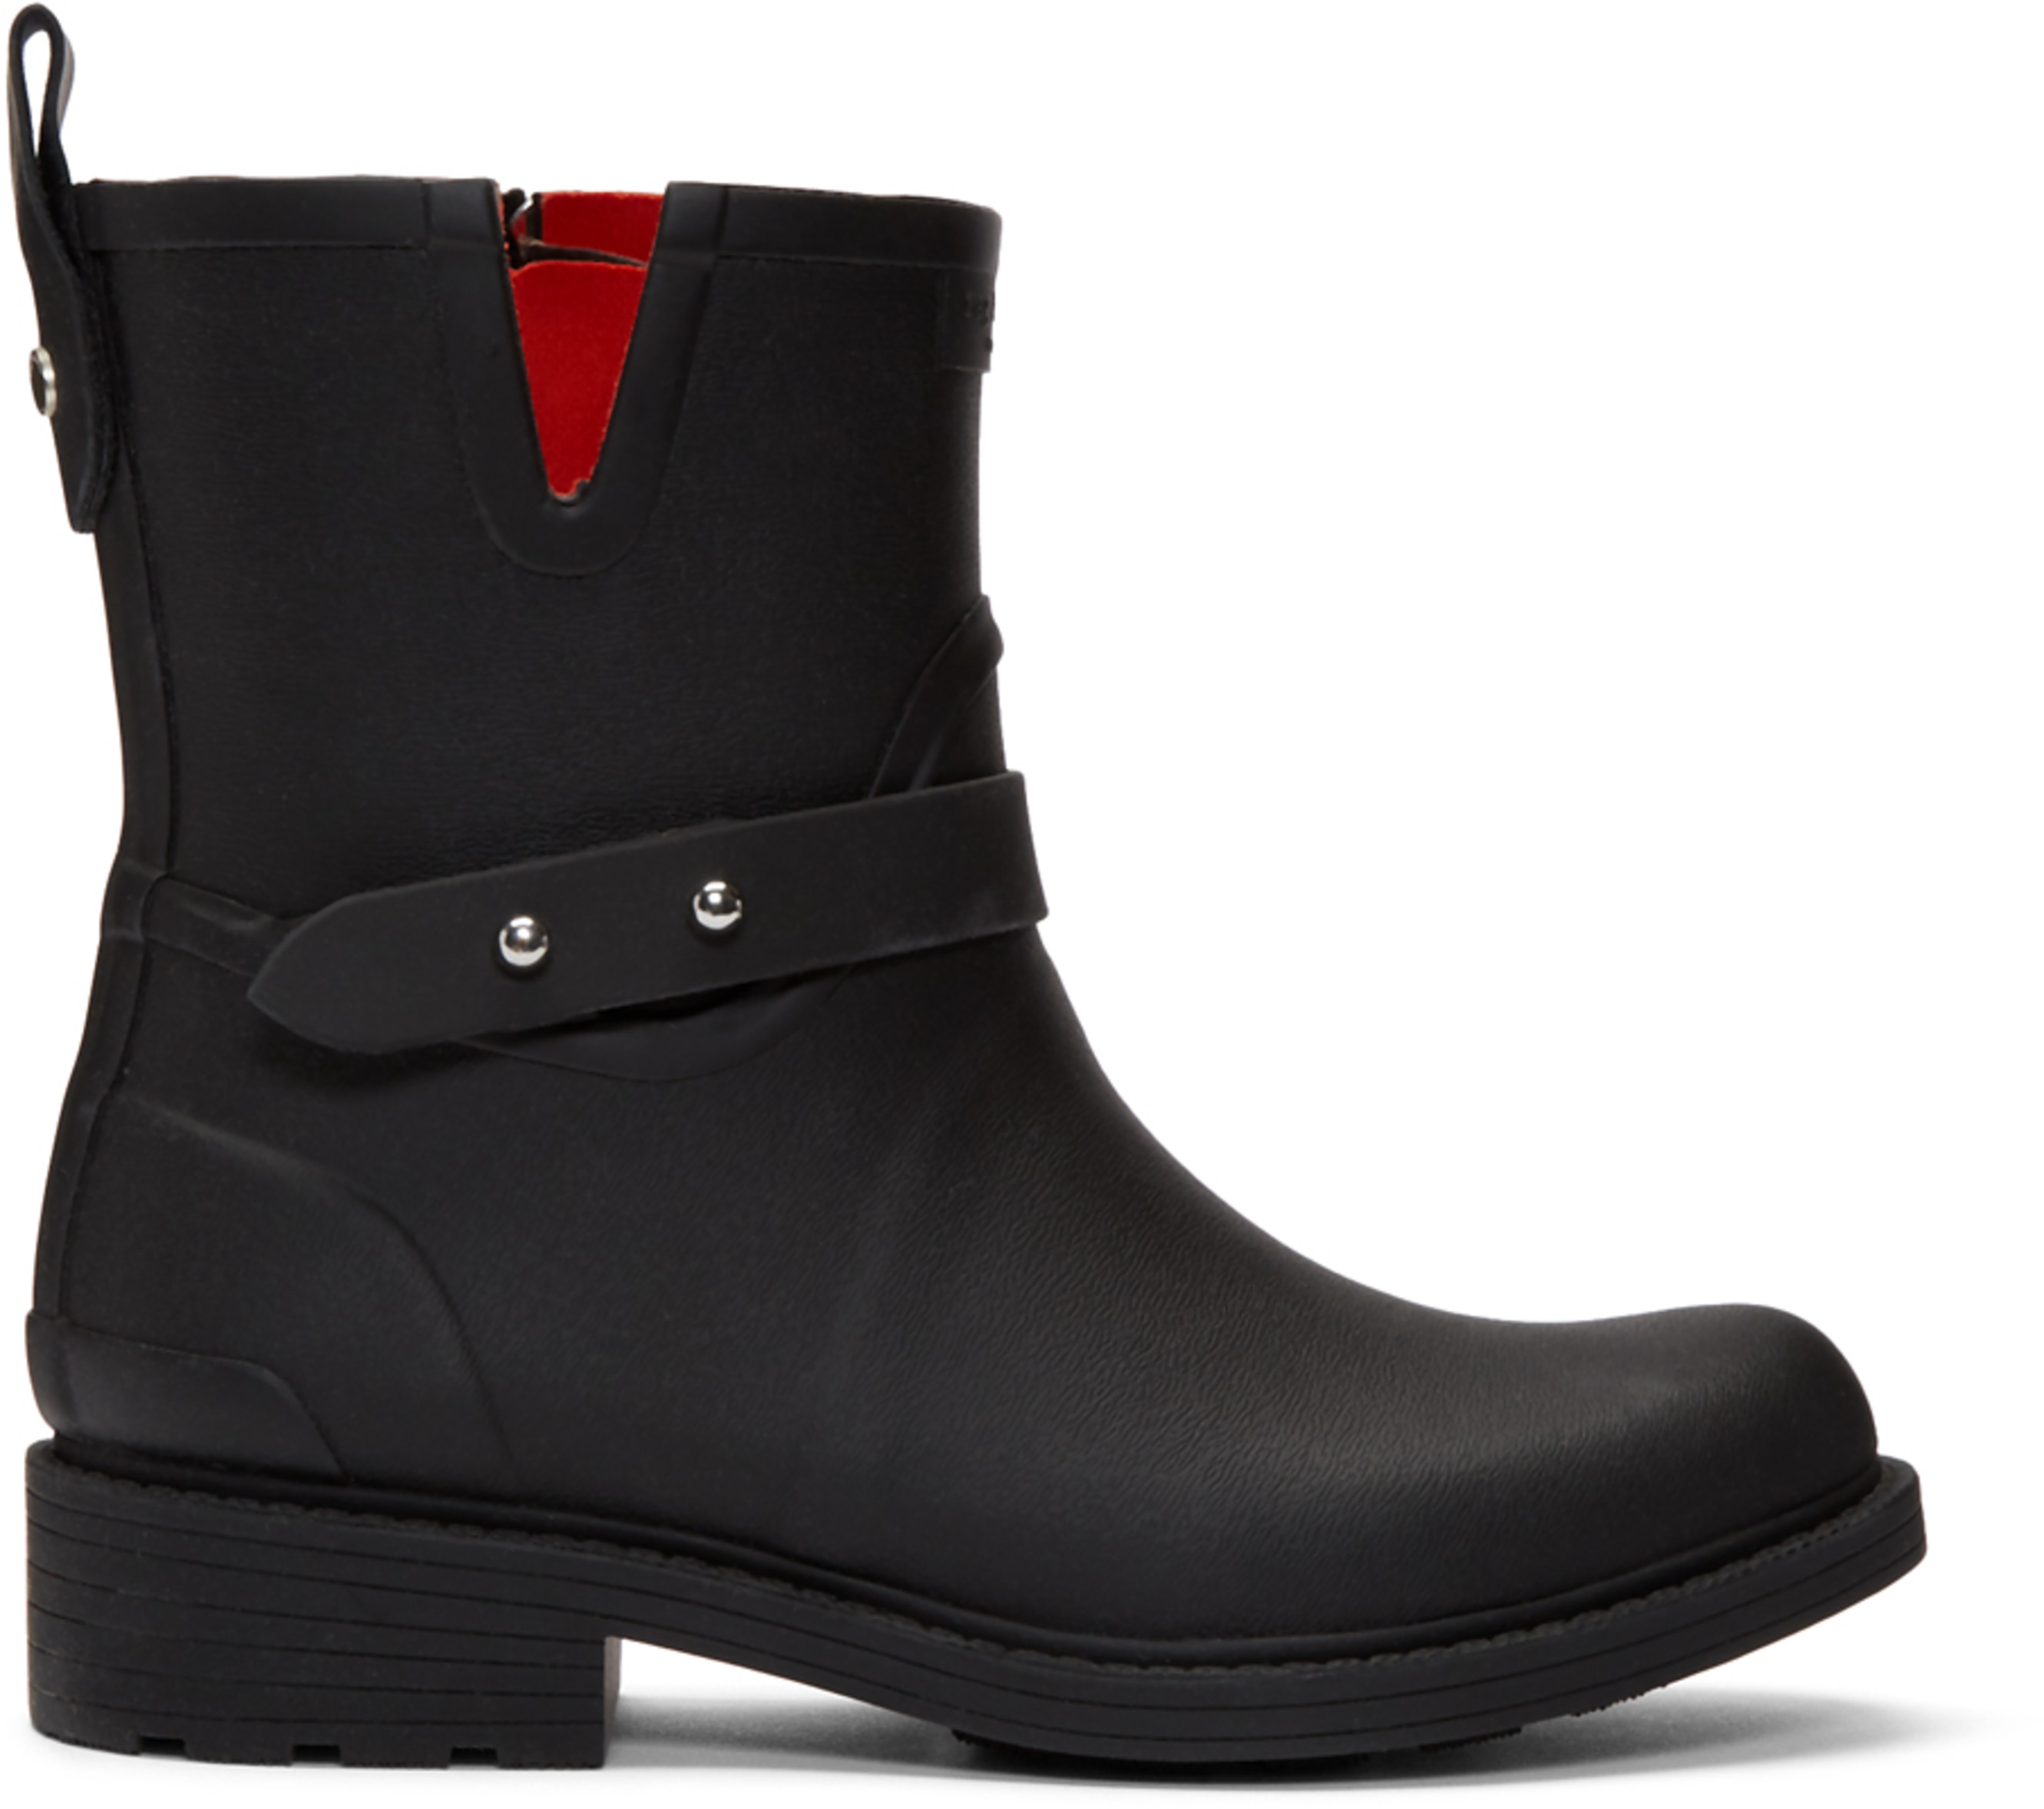 30a3442bca2 Designer ankle boots for Women